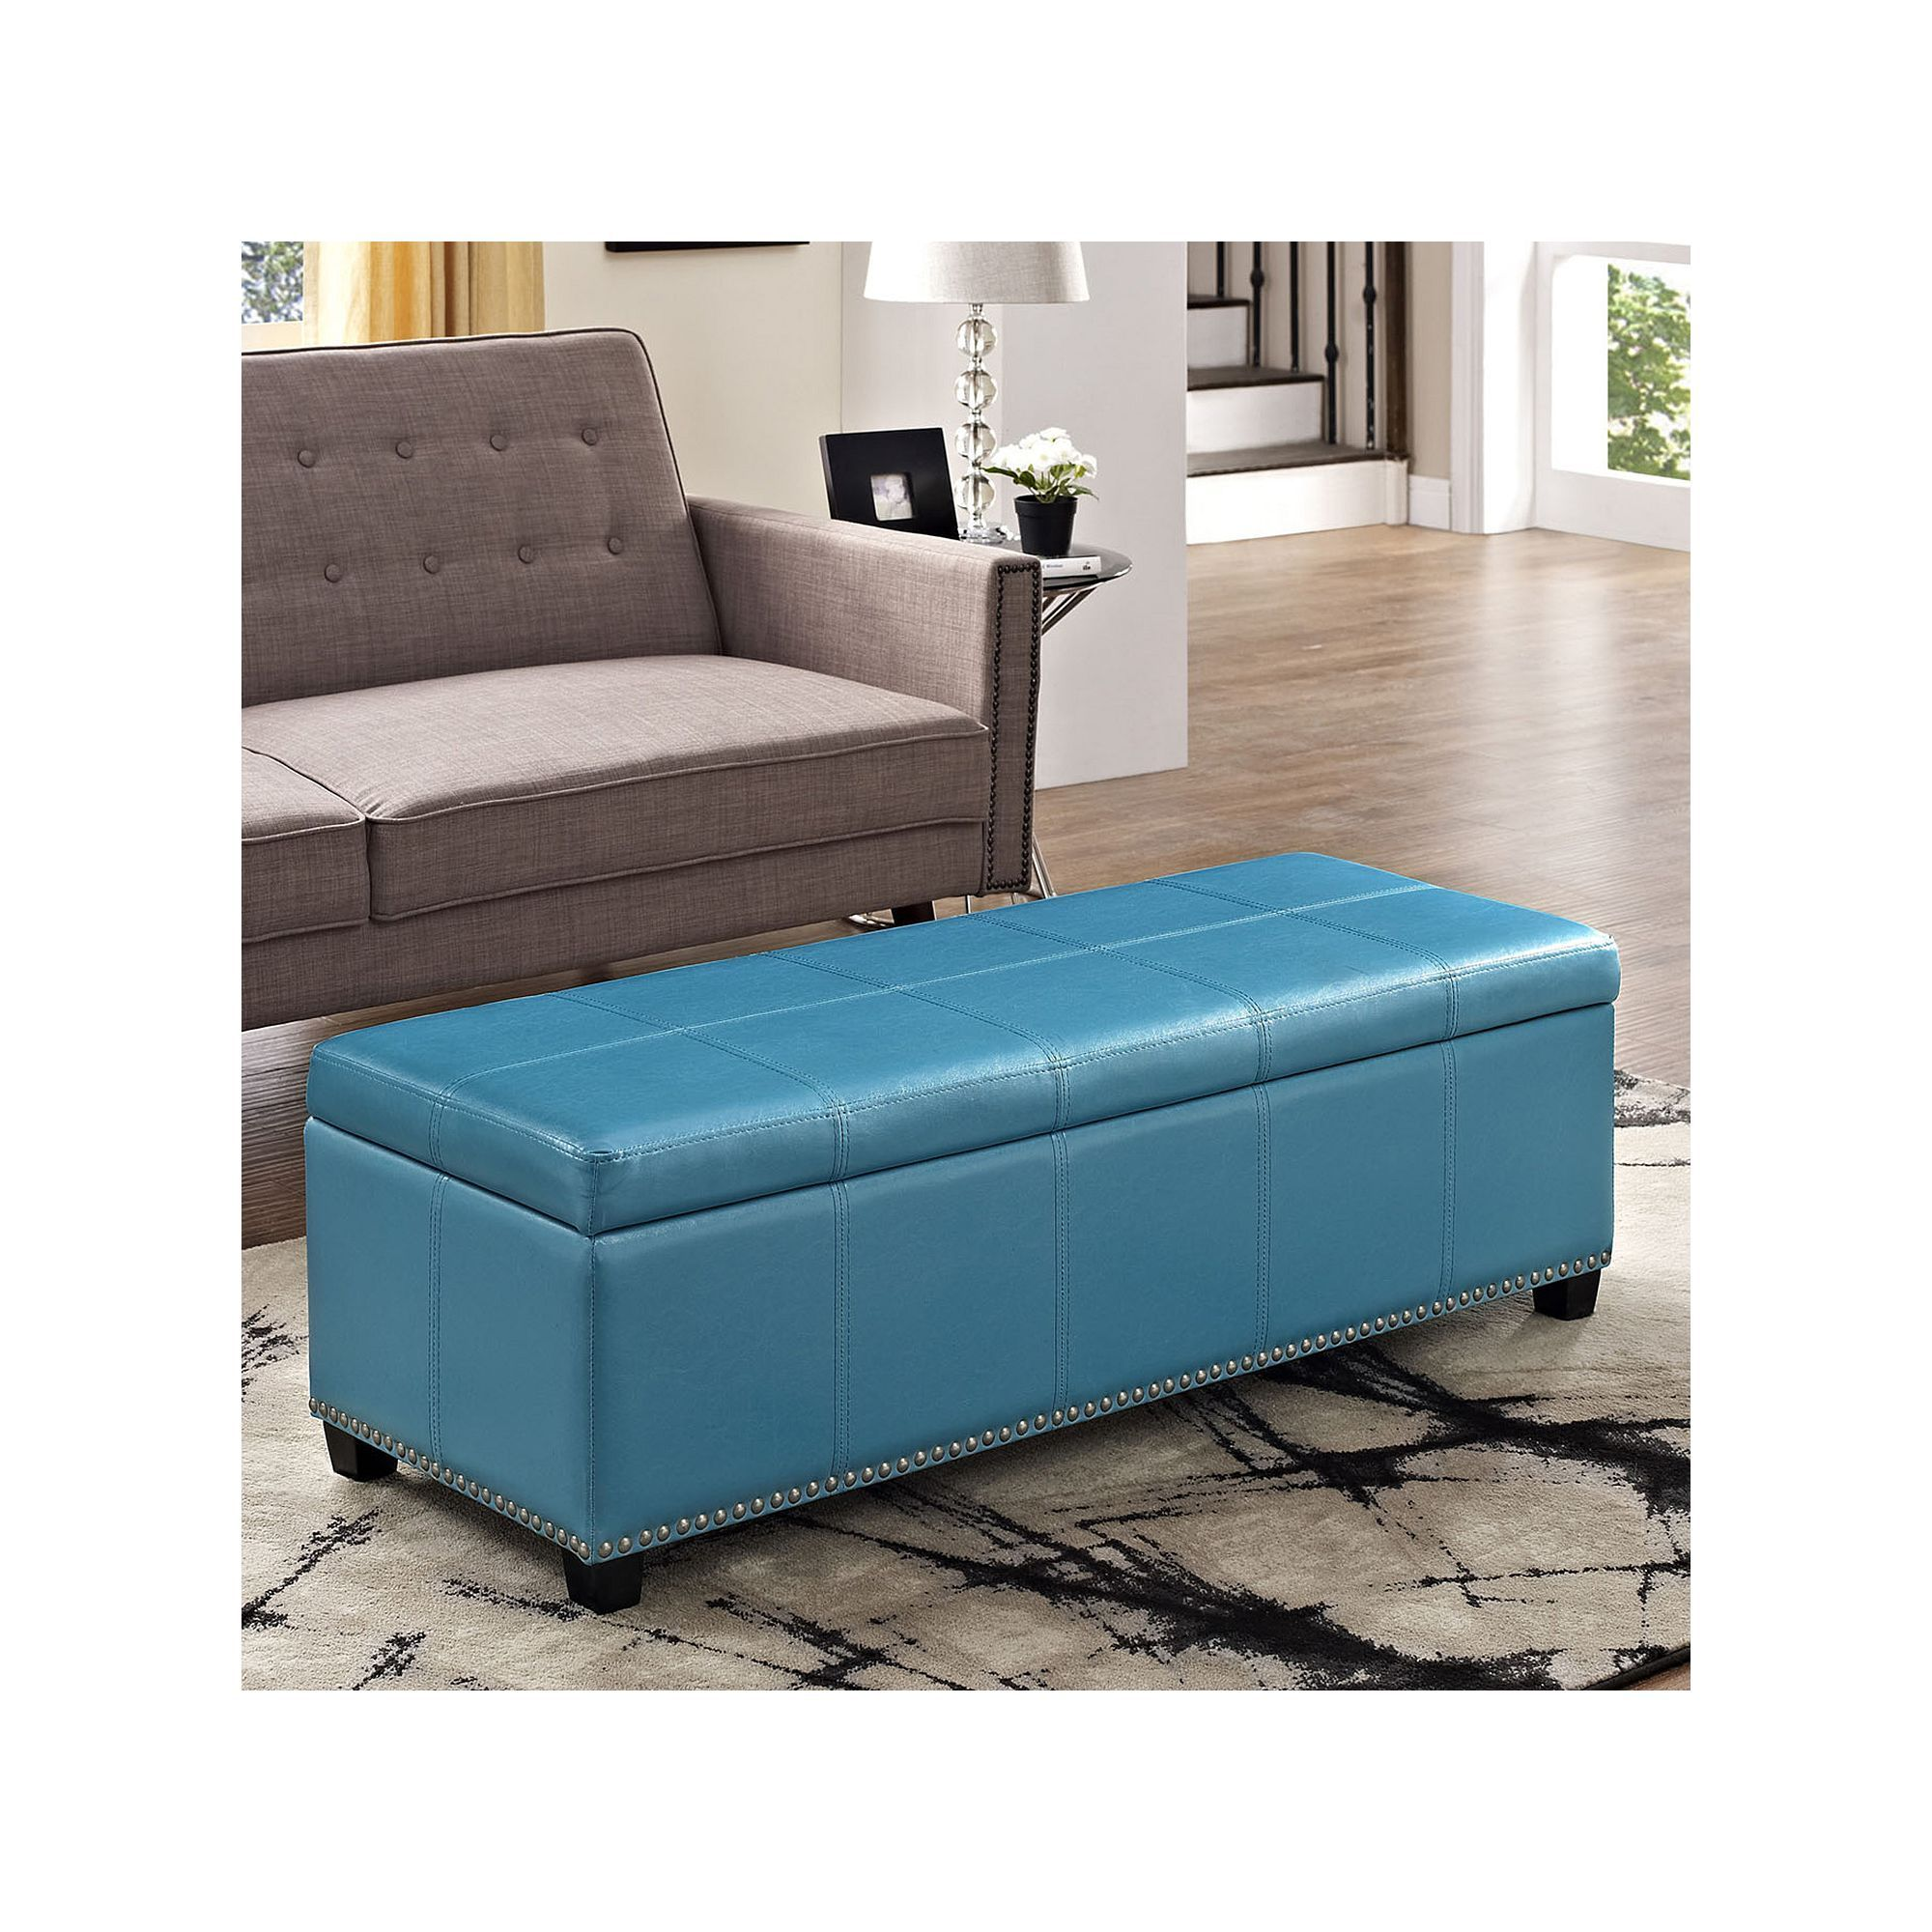 Simpli Home Kingsley Rectangular Storage Ottoman Bench, Blue